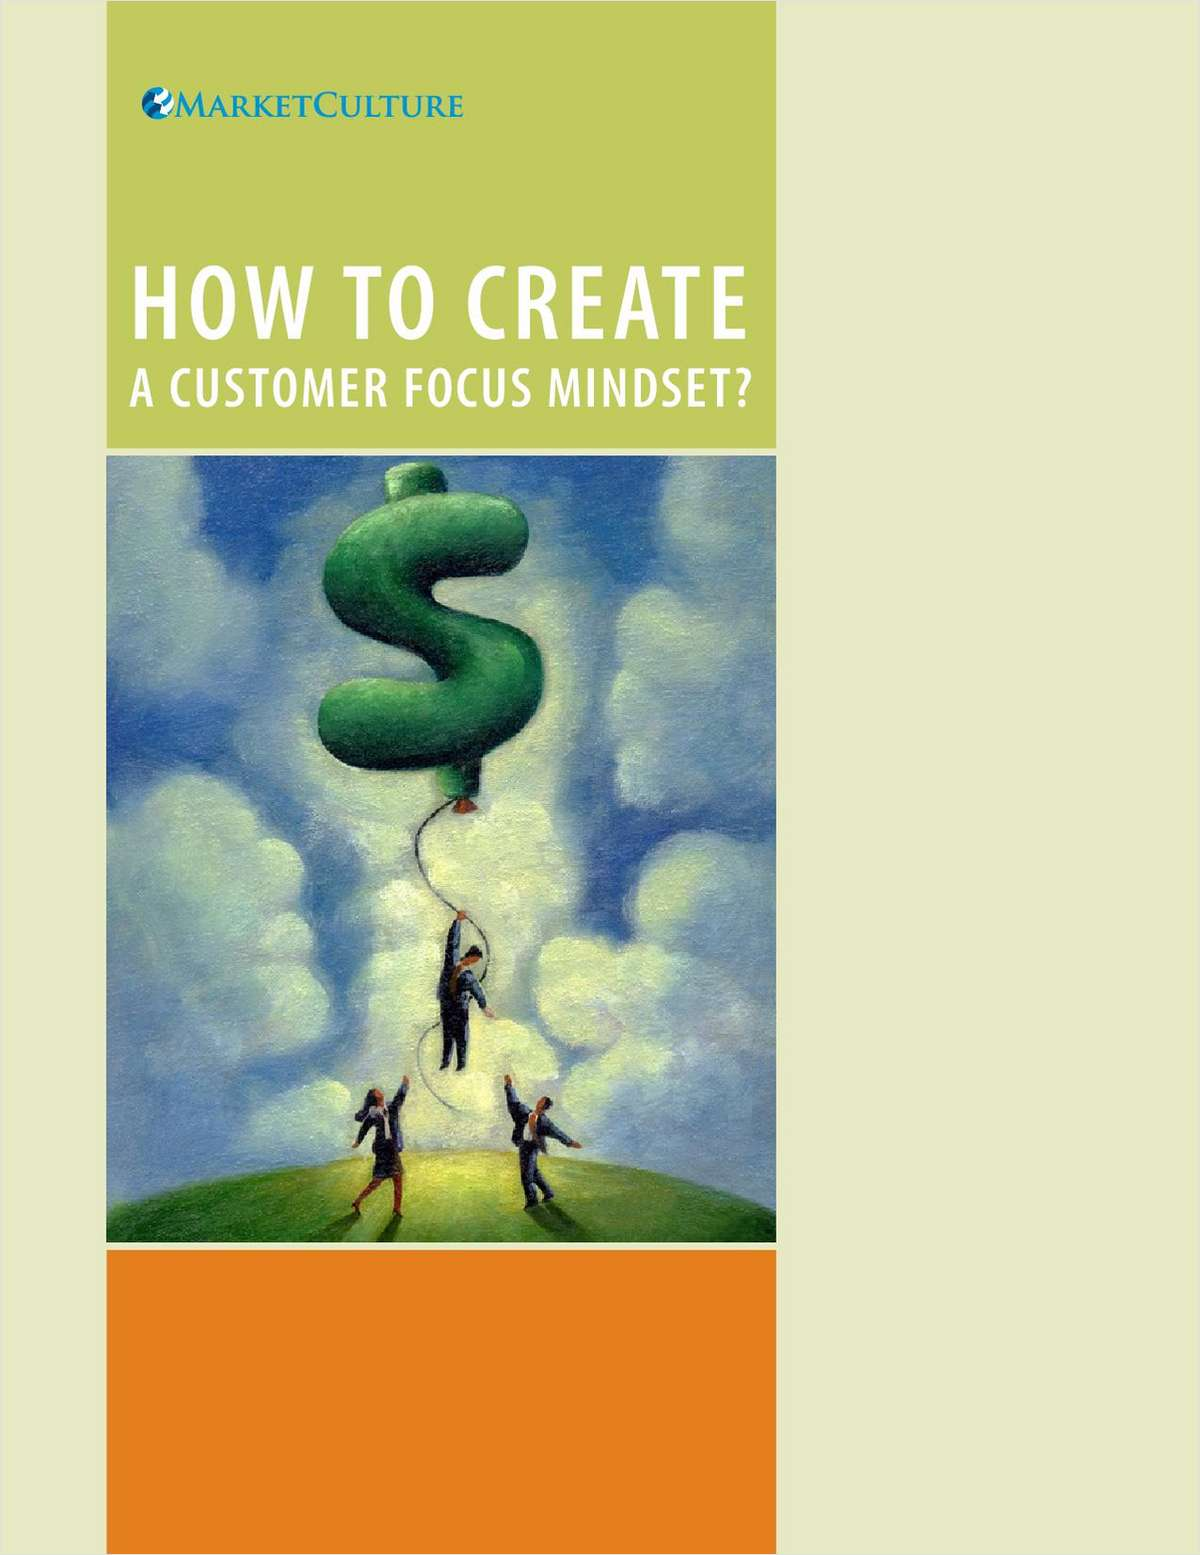 How to Create a Customer-Focus Mindset and Drive Business Growth